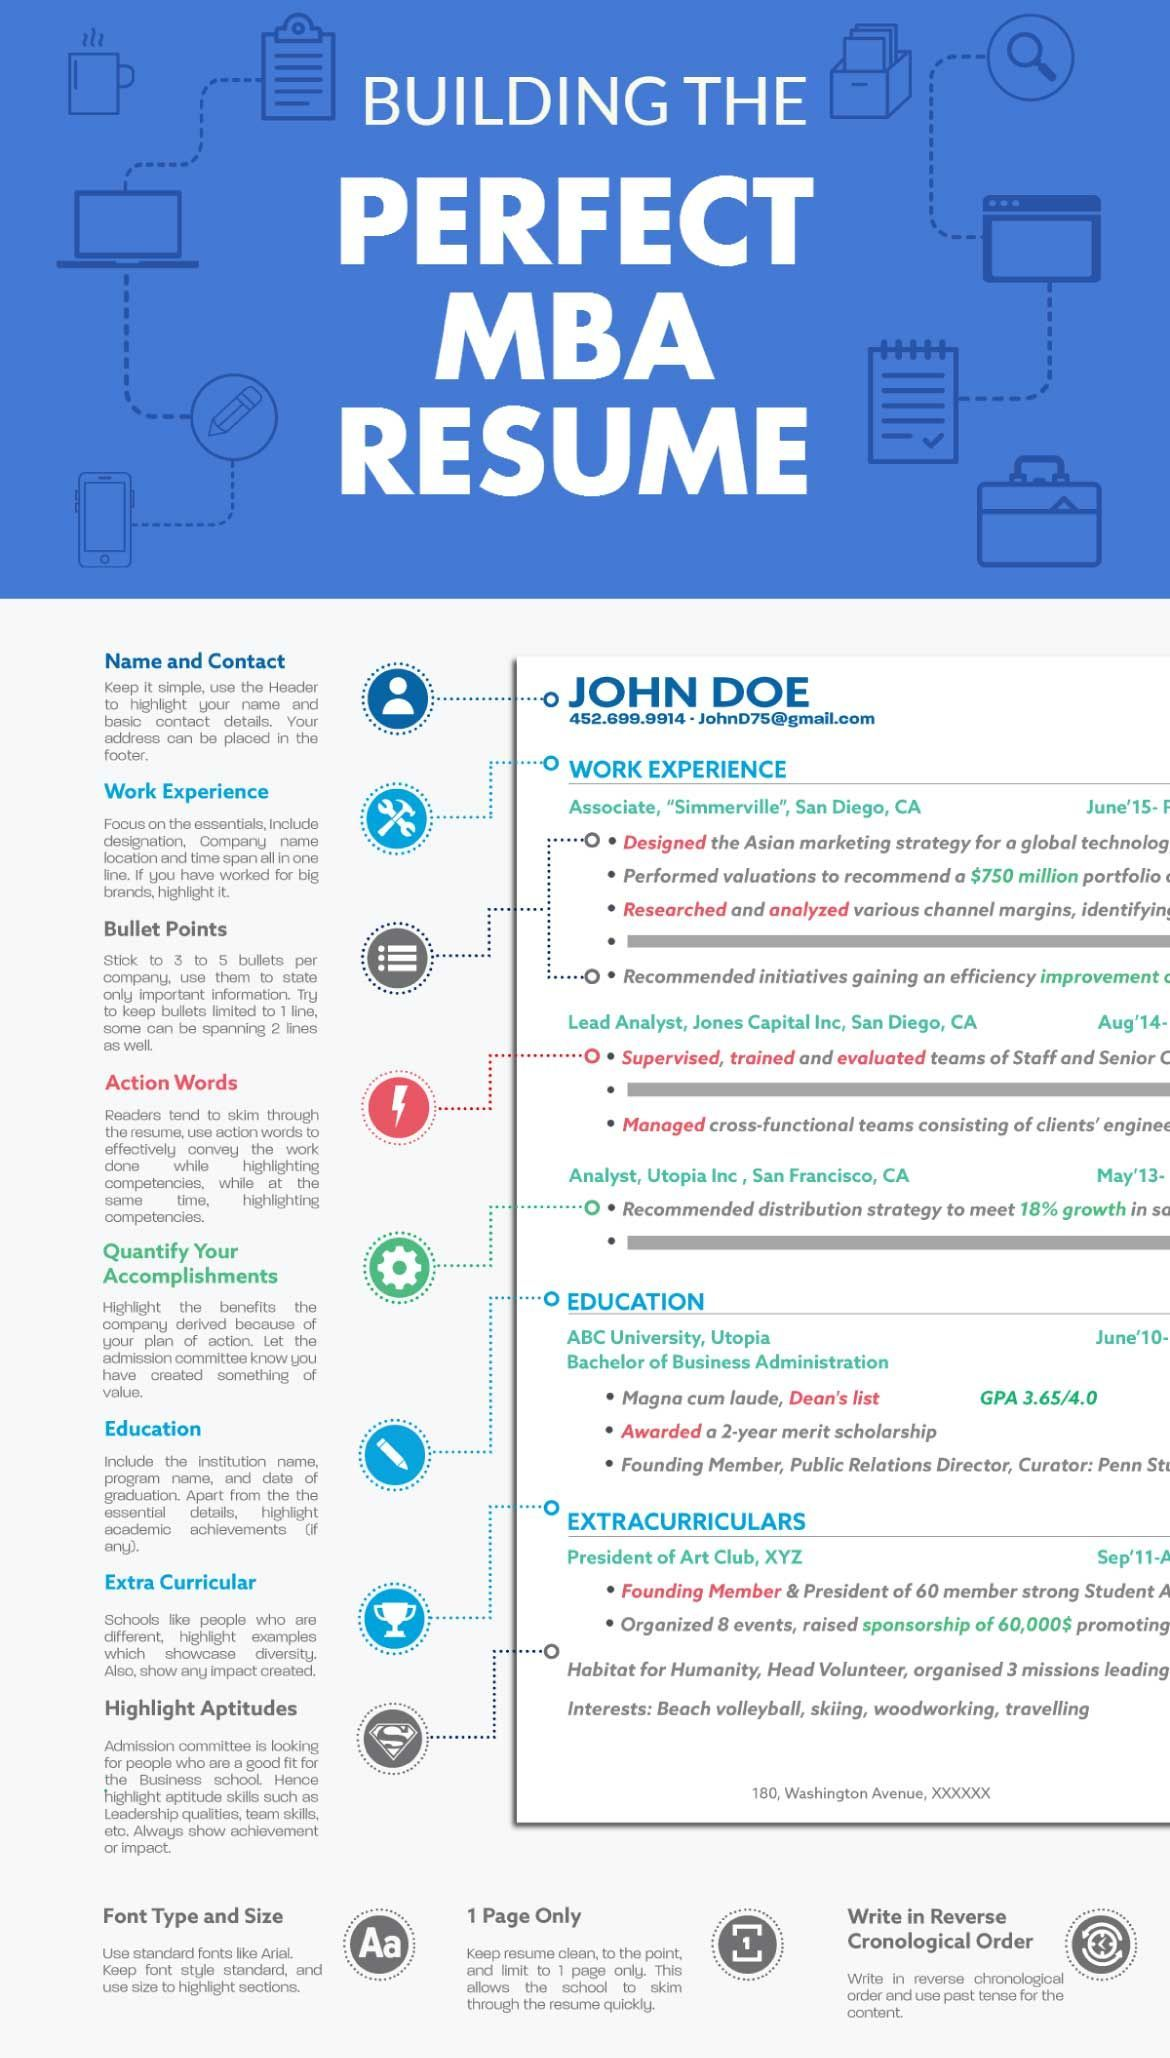 10 Steps Towards Creating The Perfect Mba Resume Infographic Http Elearninginfographics Com 10 Steps Business Management Degree Mba Wharton Business School